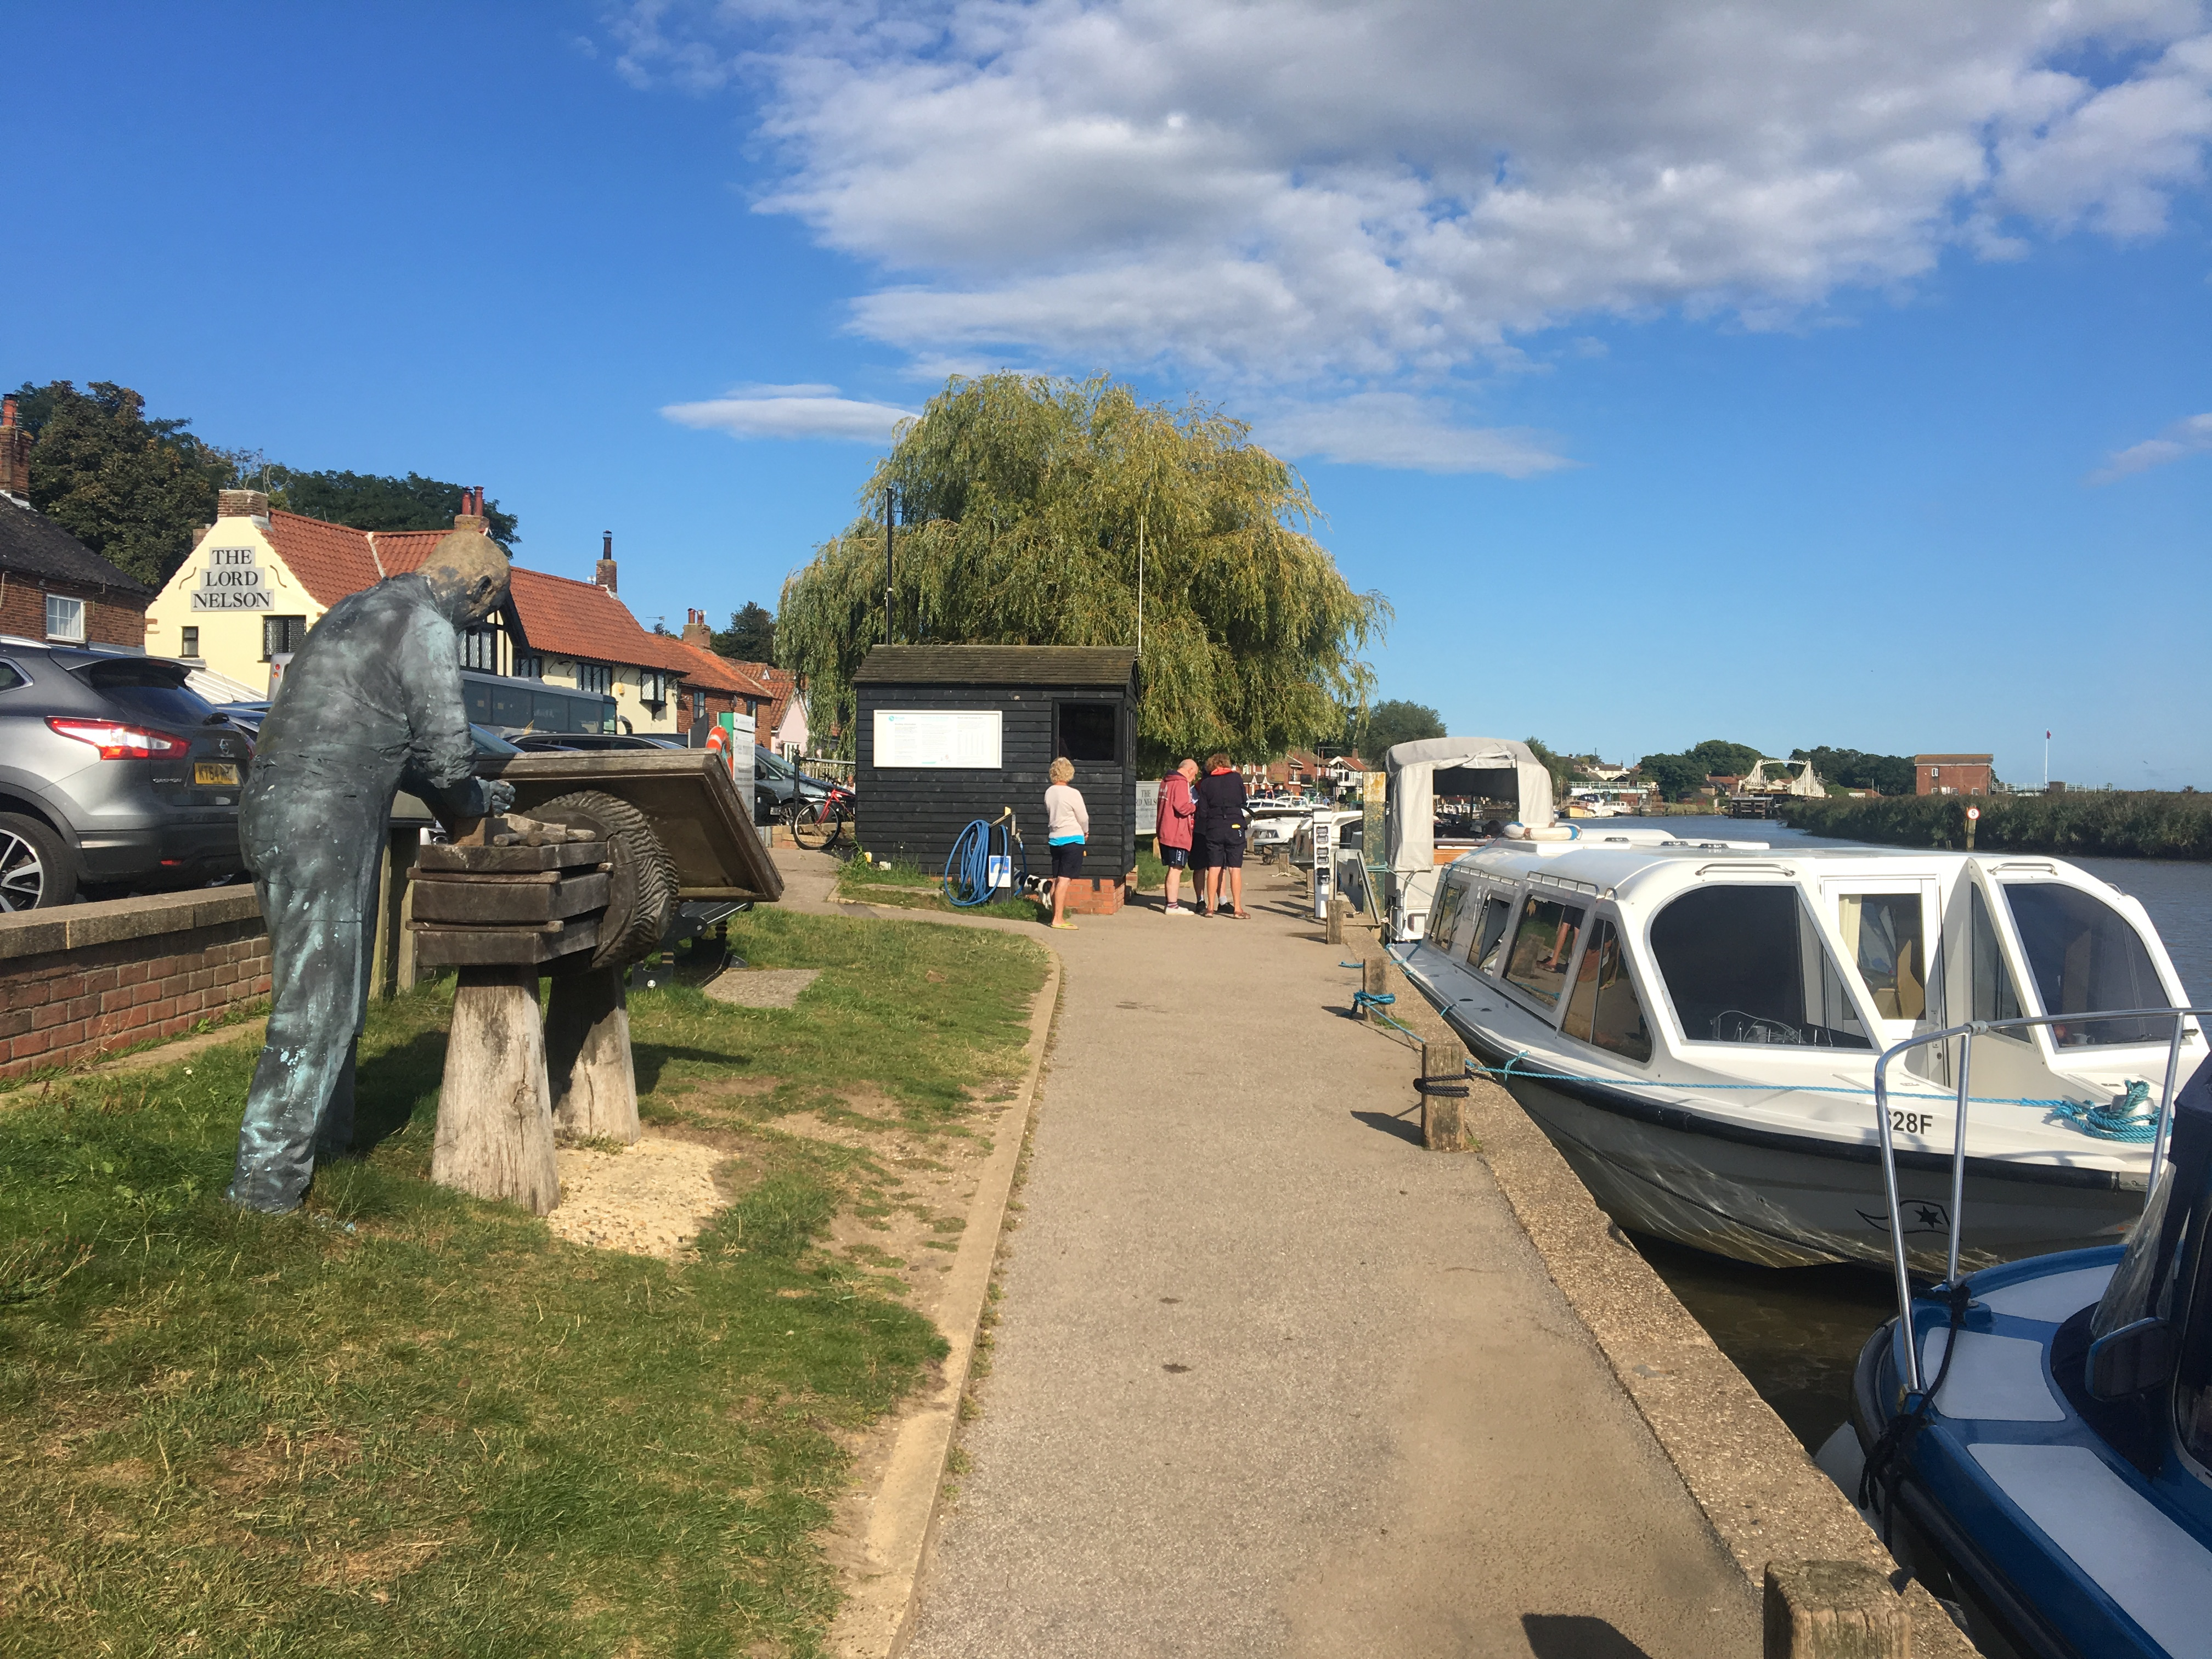 Eating out in Reedham